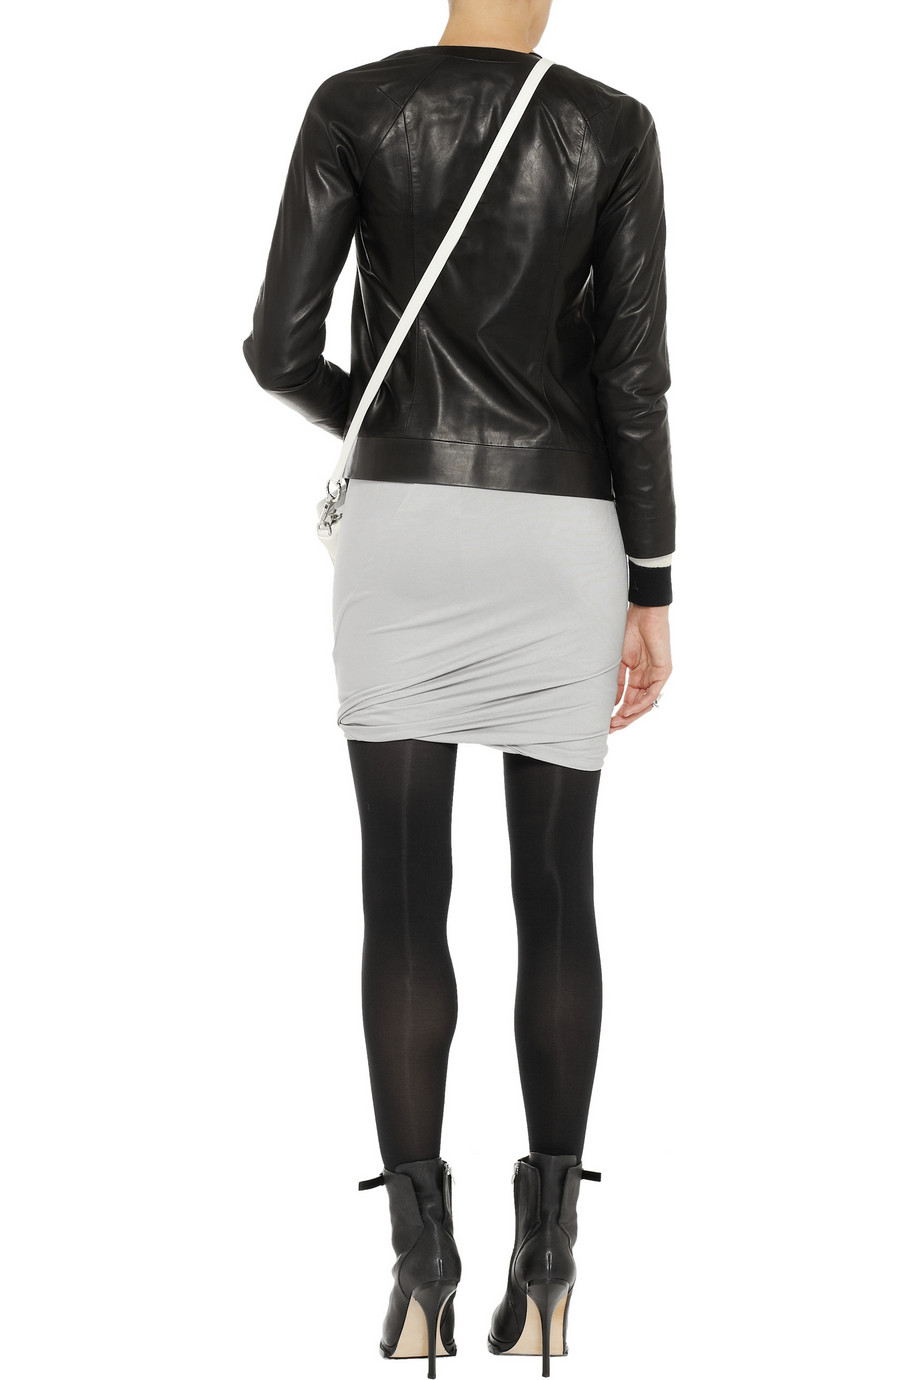 T by Alexander Wang Ruched sateen-jersey mini skirt – 50% at THE OUTNET.COM